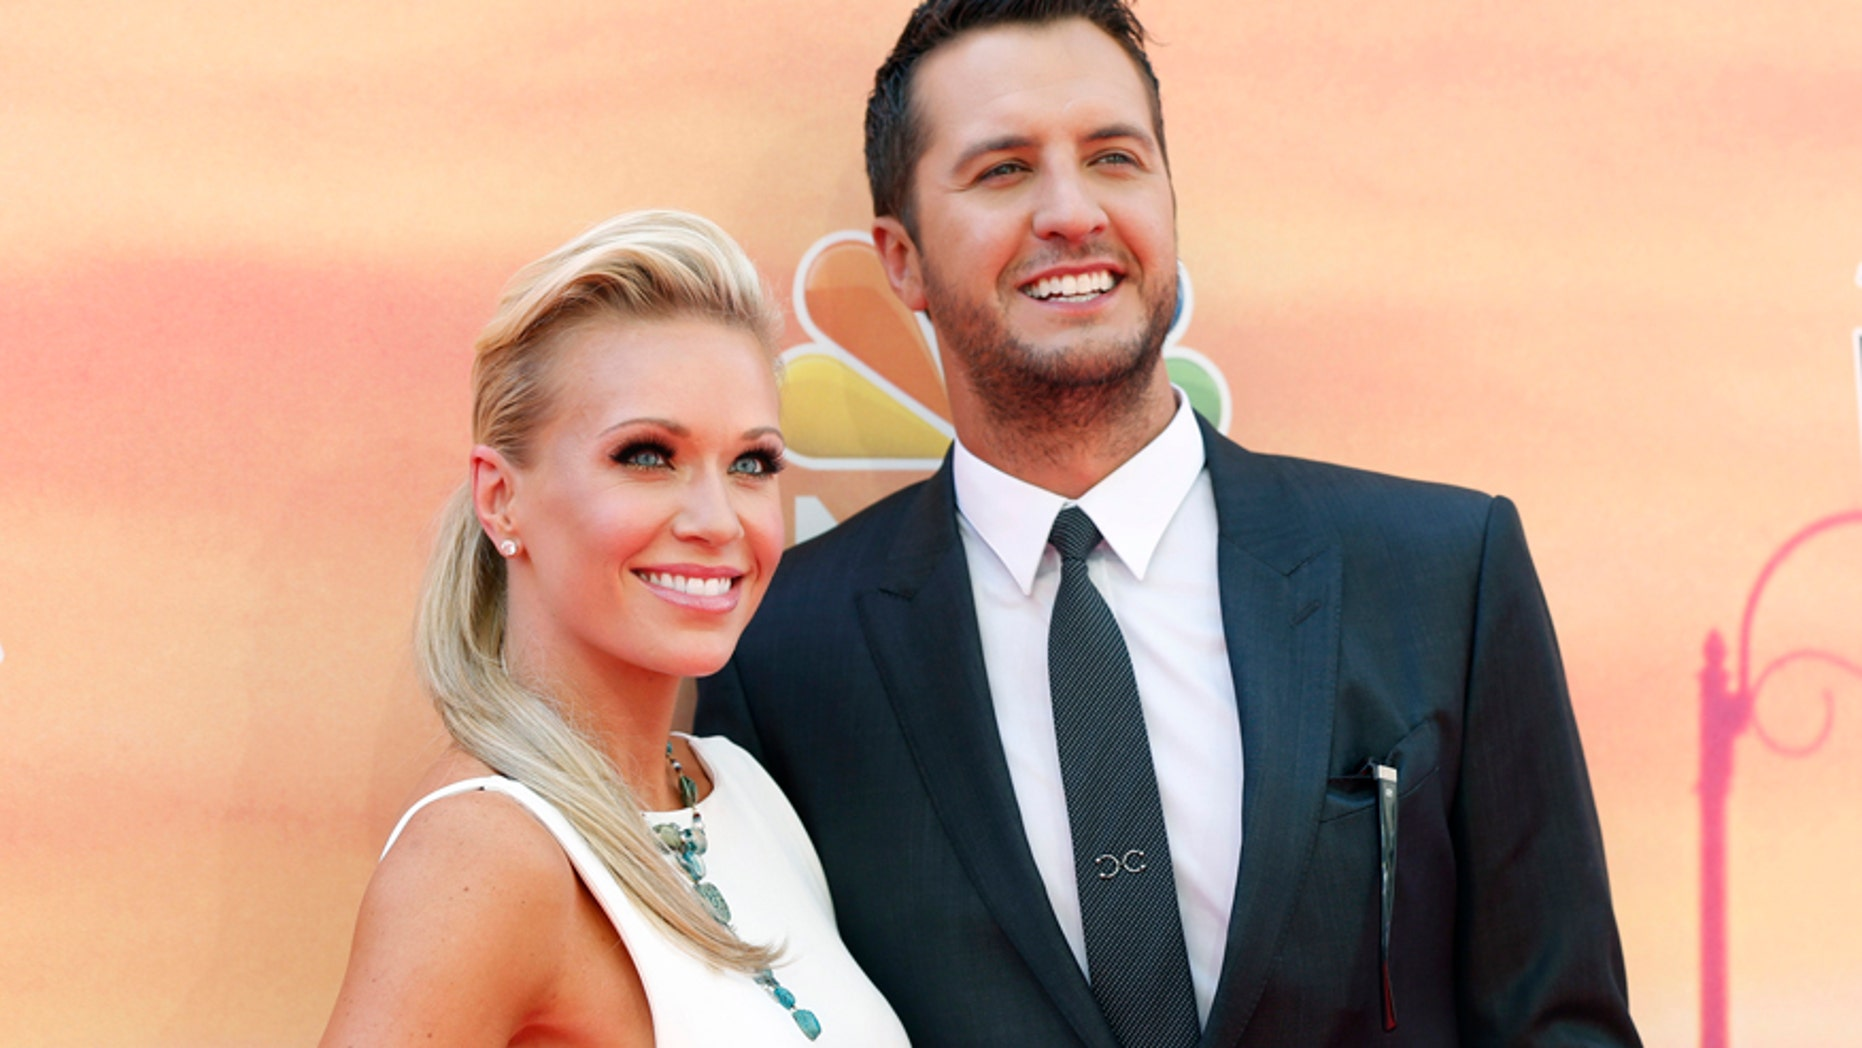 Country music recording artist Luke Bryan and his wife Caroline arrive at the iHeartRadio Music Awards in Los Angeles, California May 1, 2014.